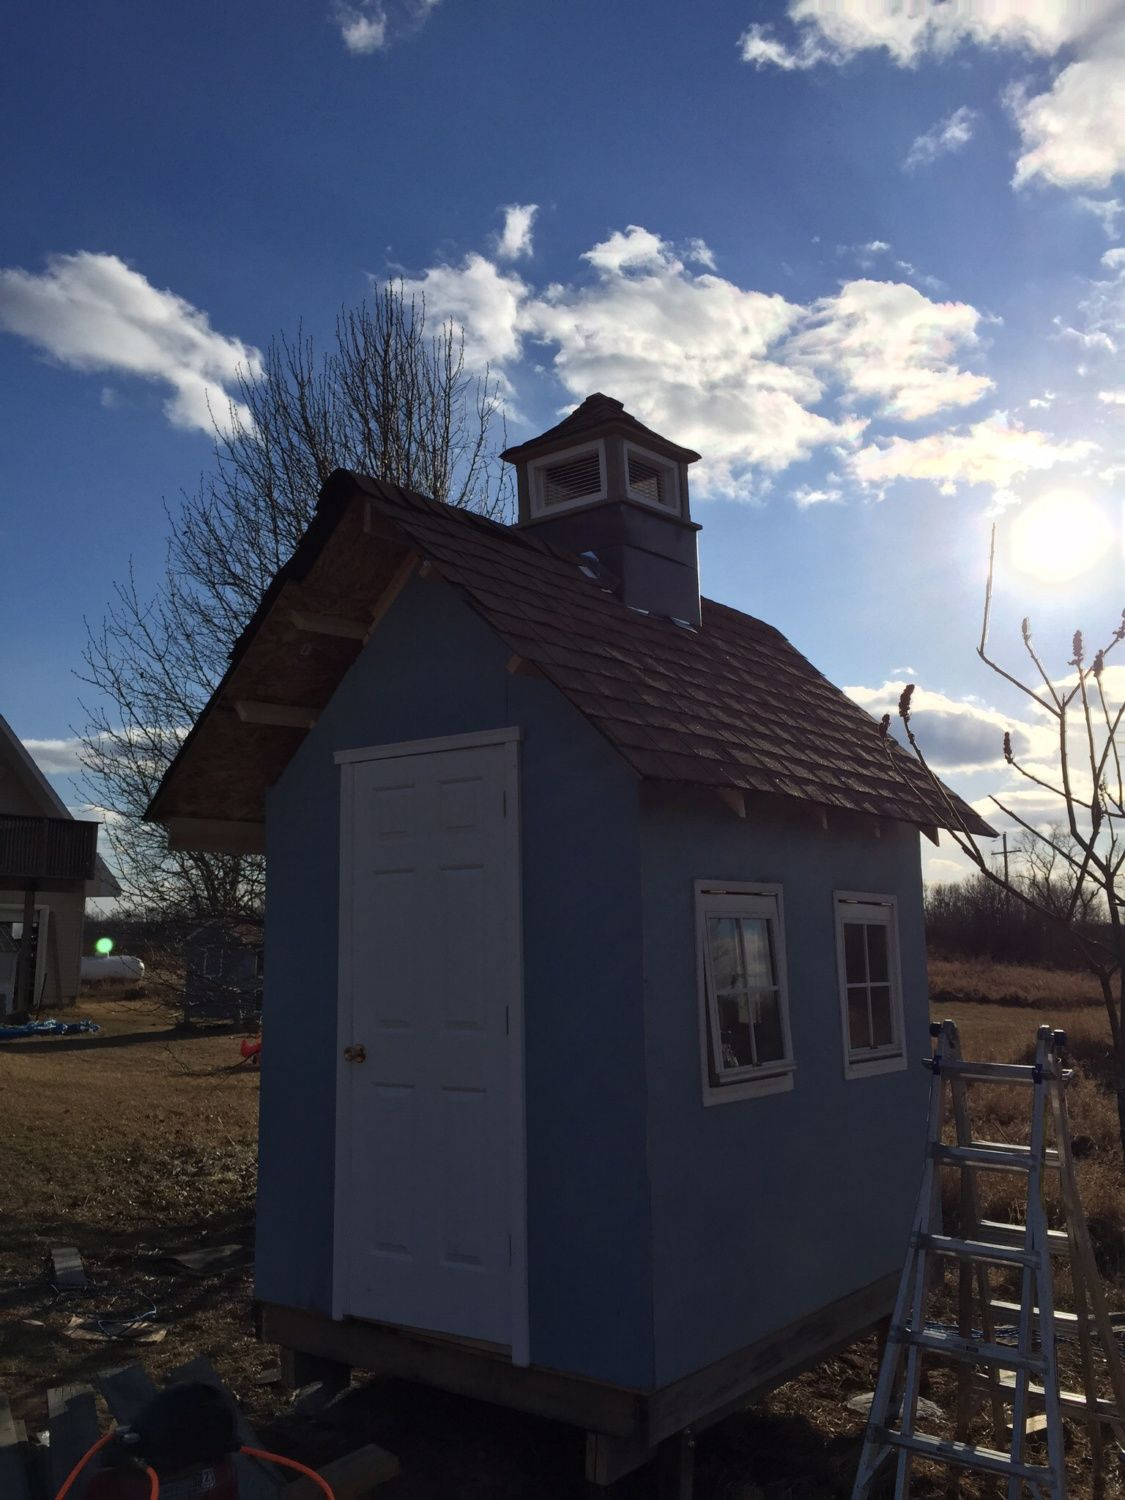 Finished shingling and adding the cupola.